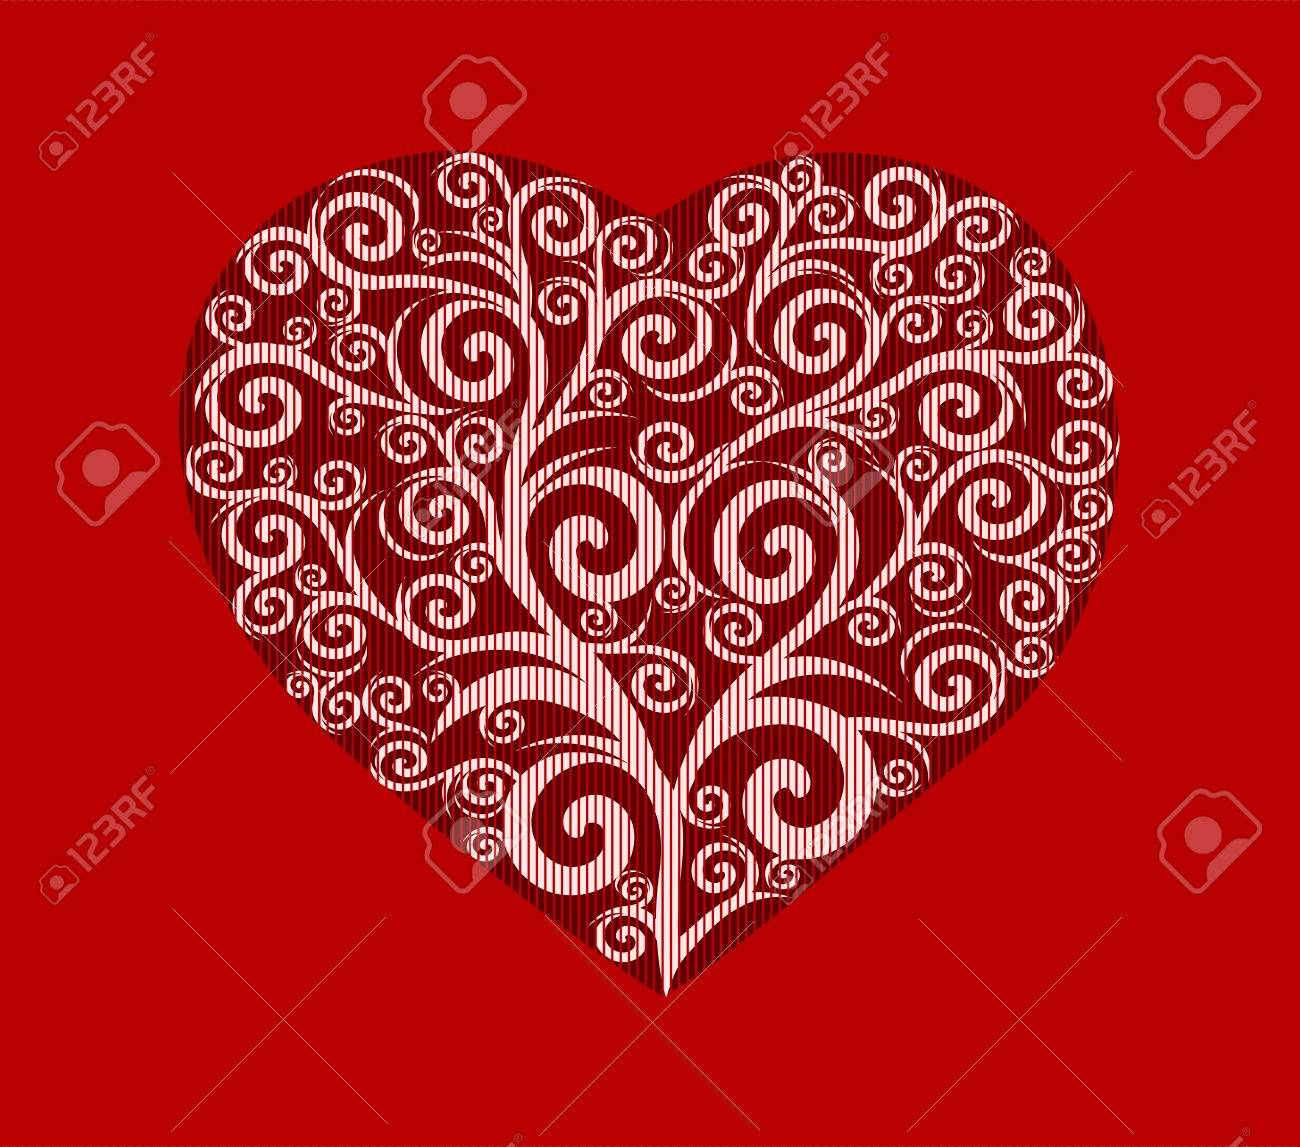 vector illustration of a stylish heart. Valentine's Day card. Stock Vector - 8542954